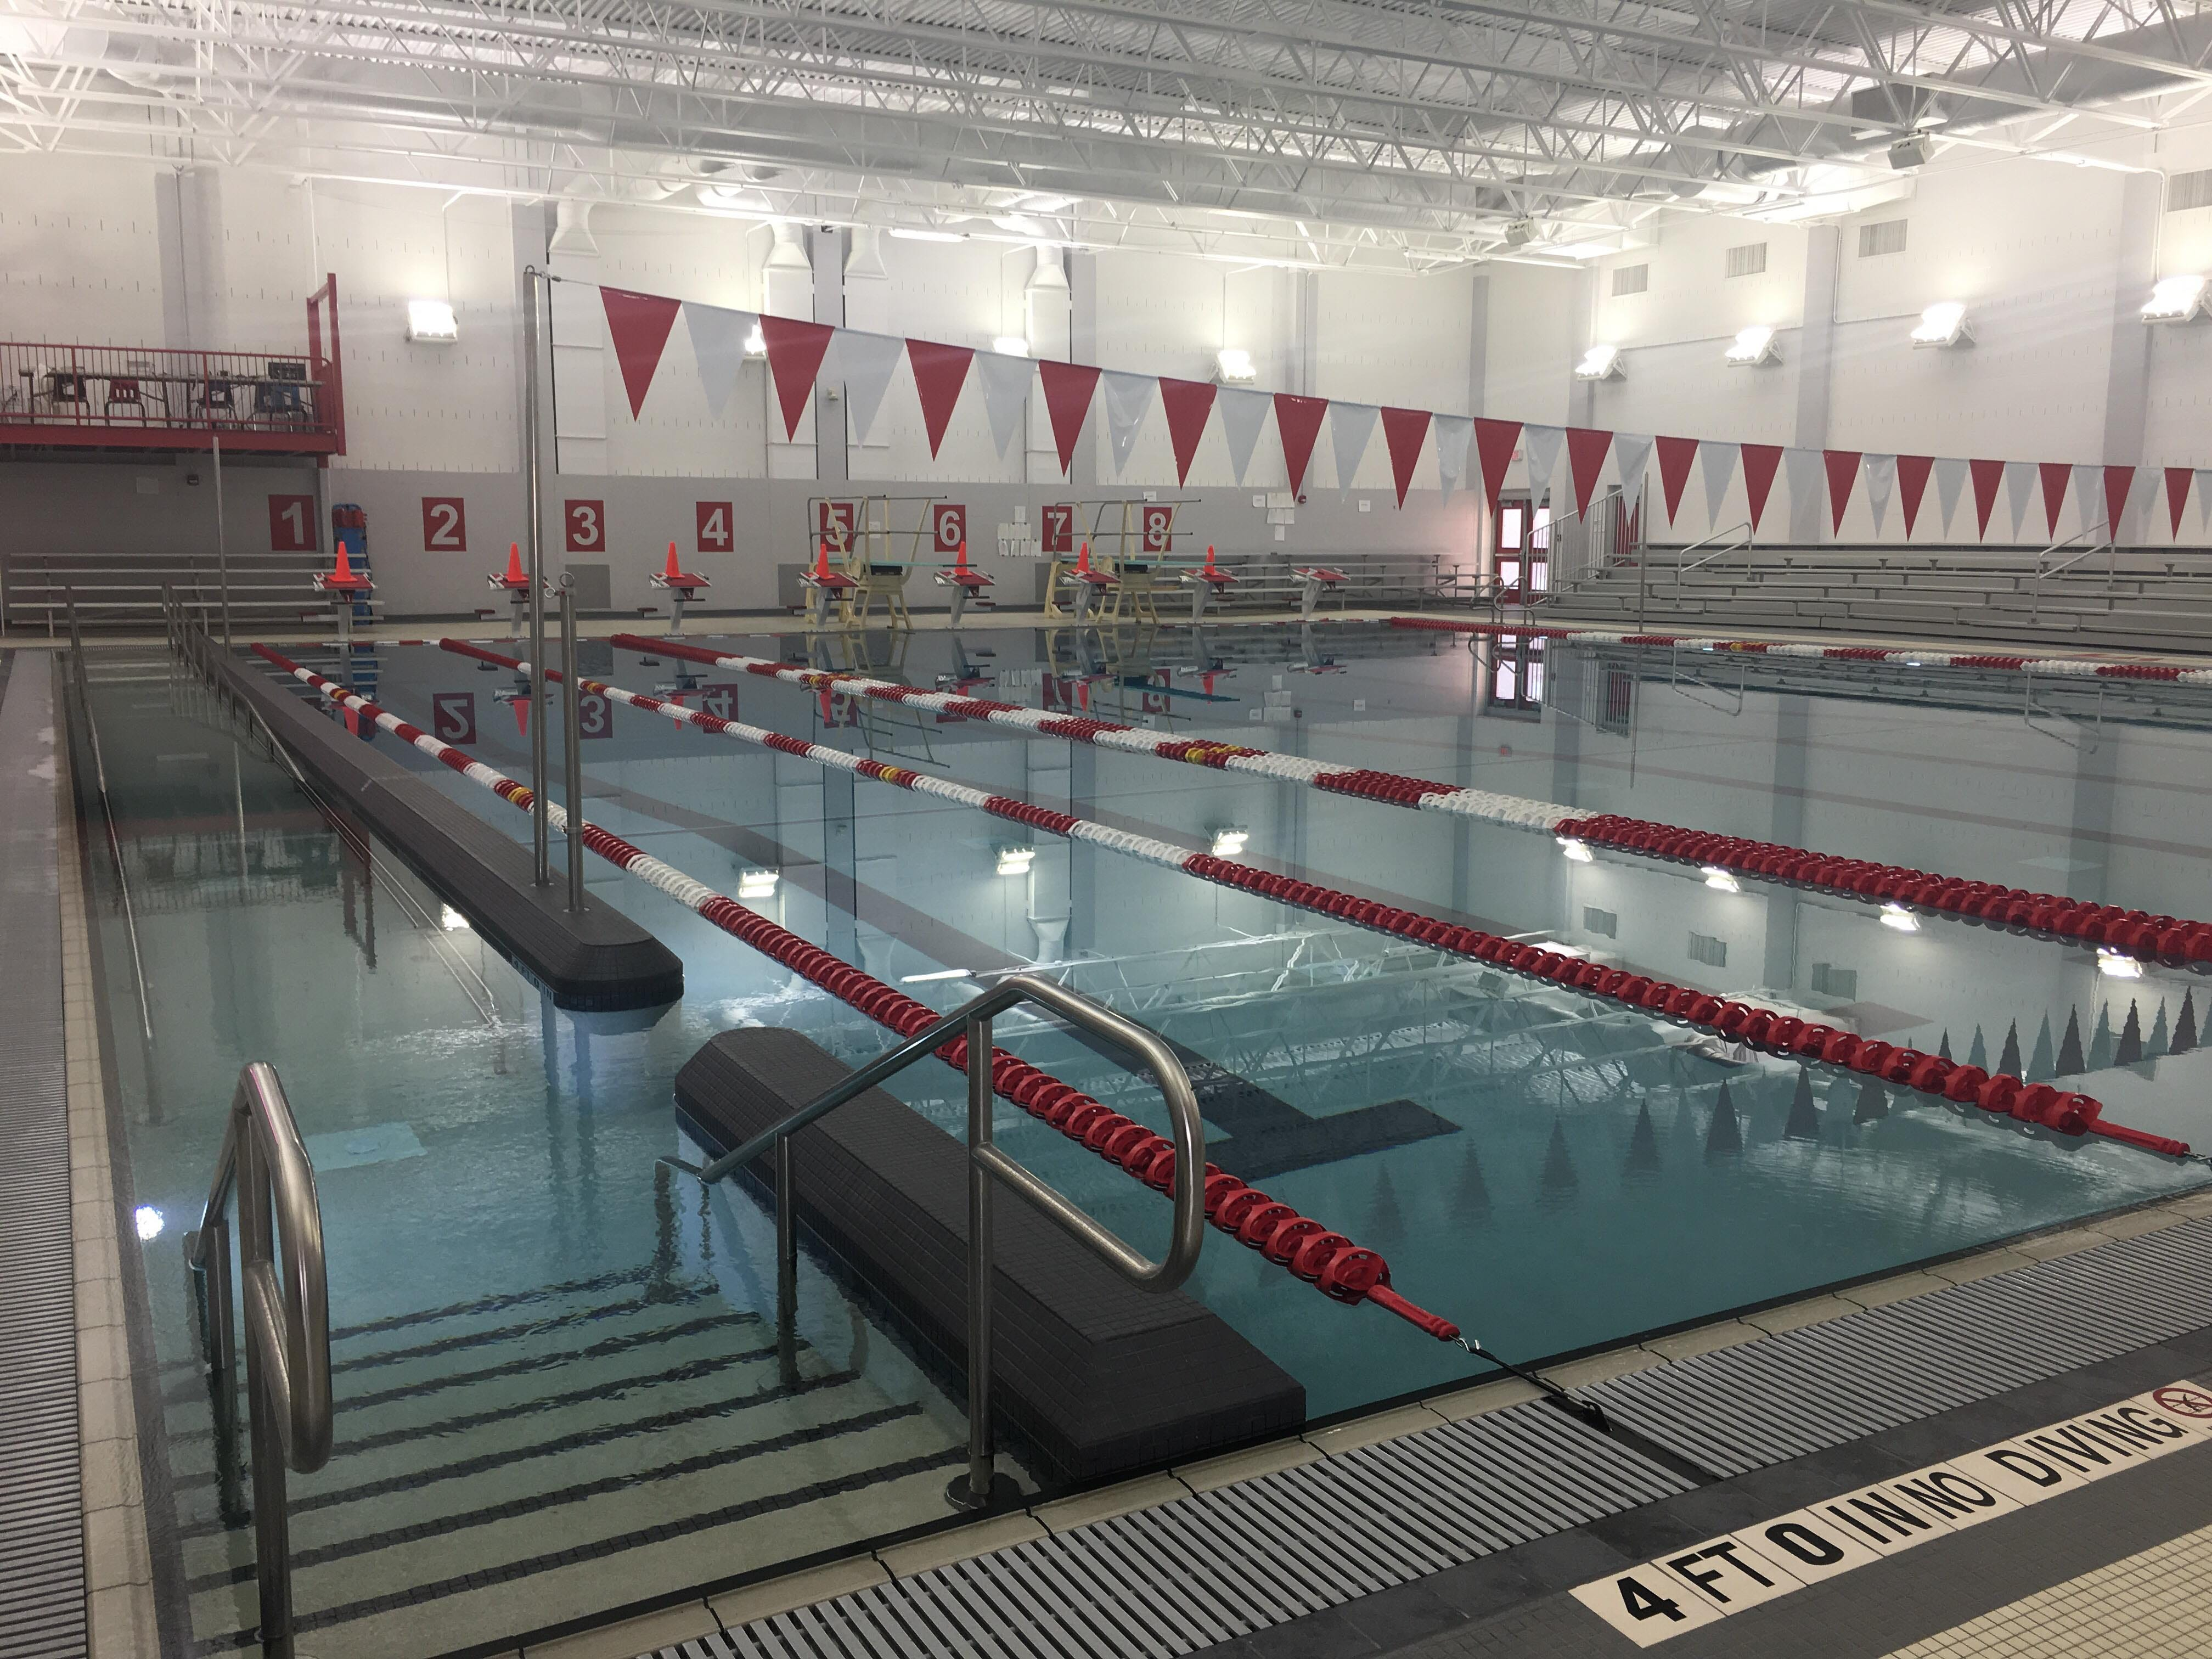 Lincoln High School's renovated swimming pool, which now includes a handicap-accessible entry point and a deeper end for diving.